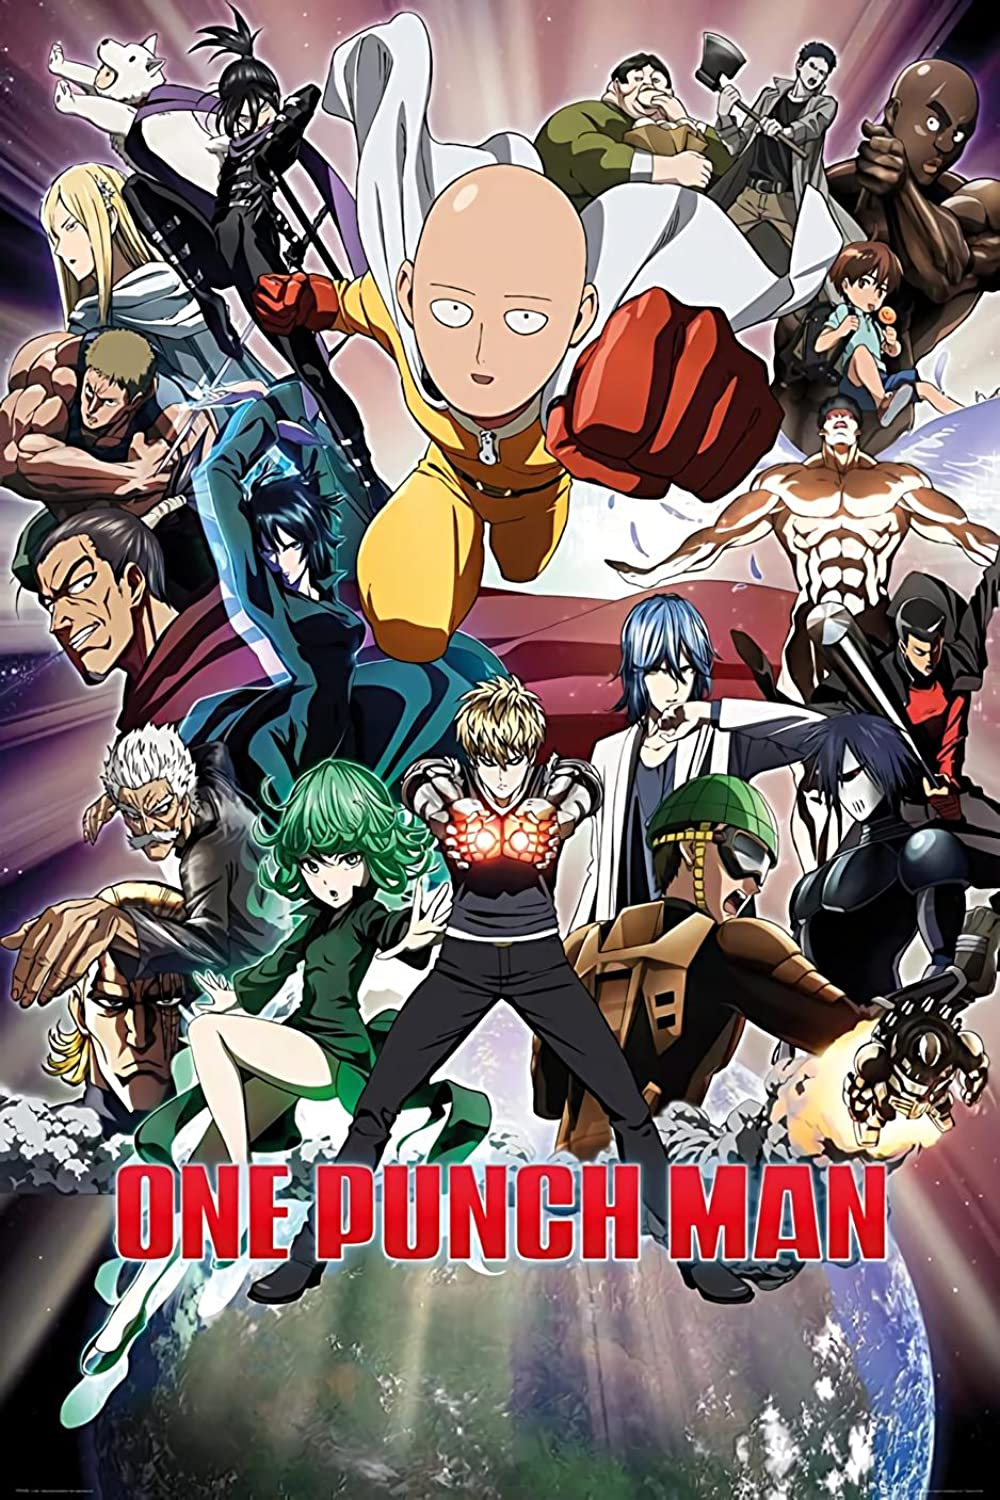 One Punch Man Anime Voice Over Wiki Fandom Powered By Wikia